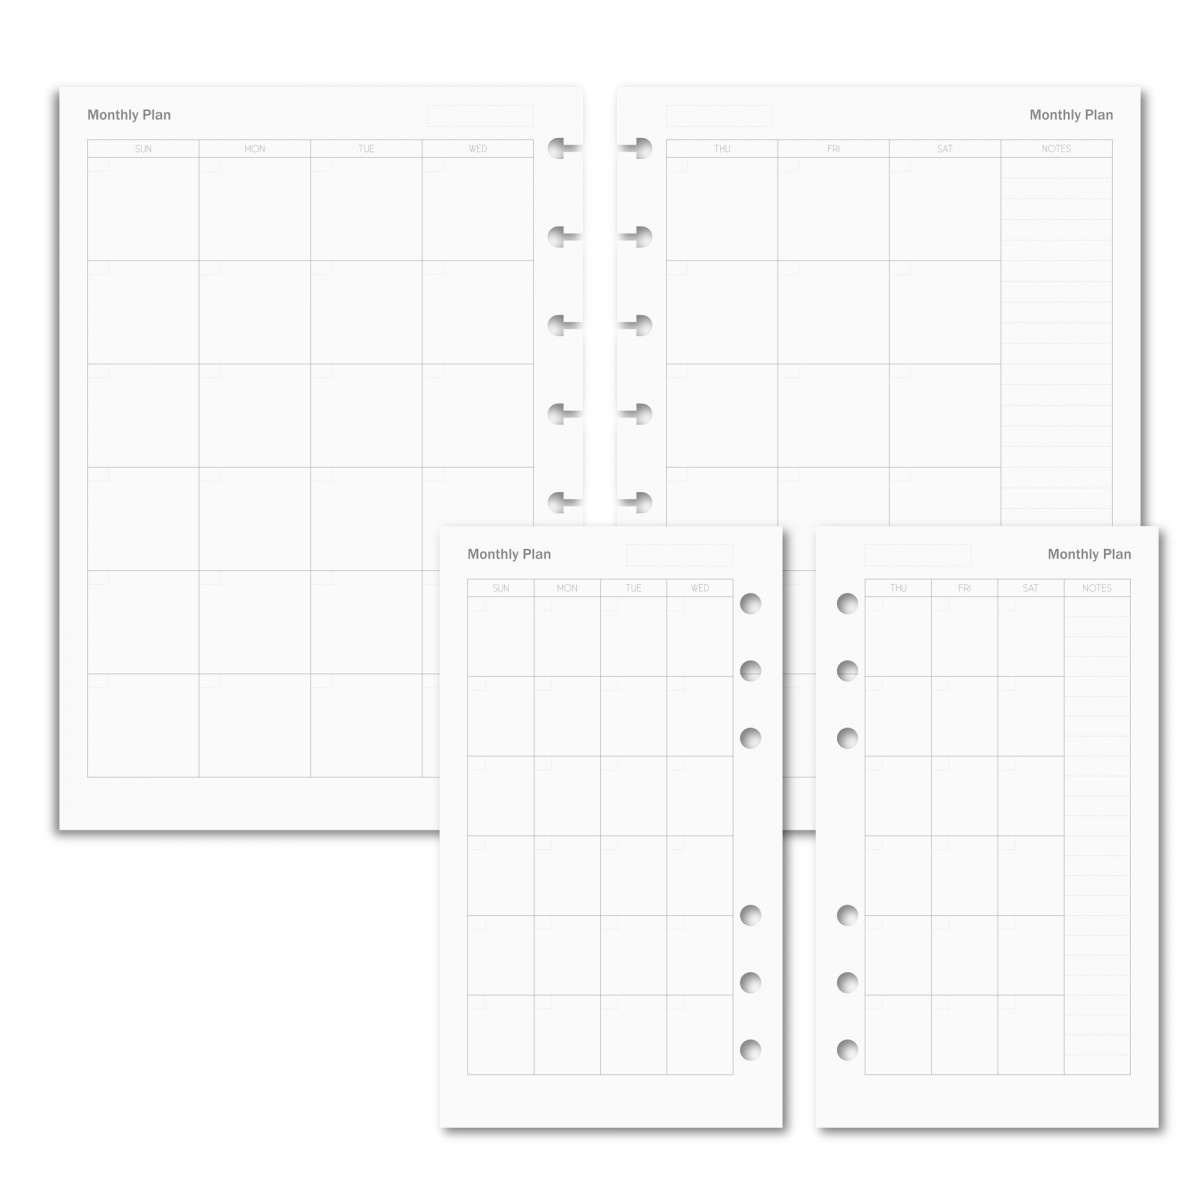 PLANNER REFILL - MONTHLY PLAN